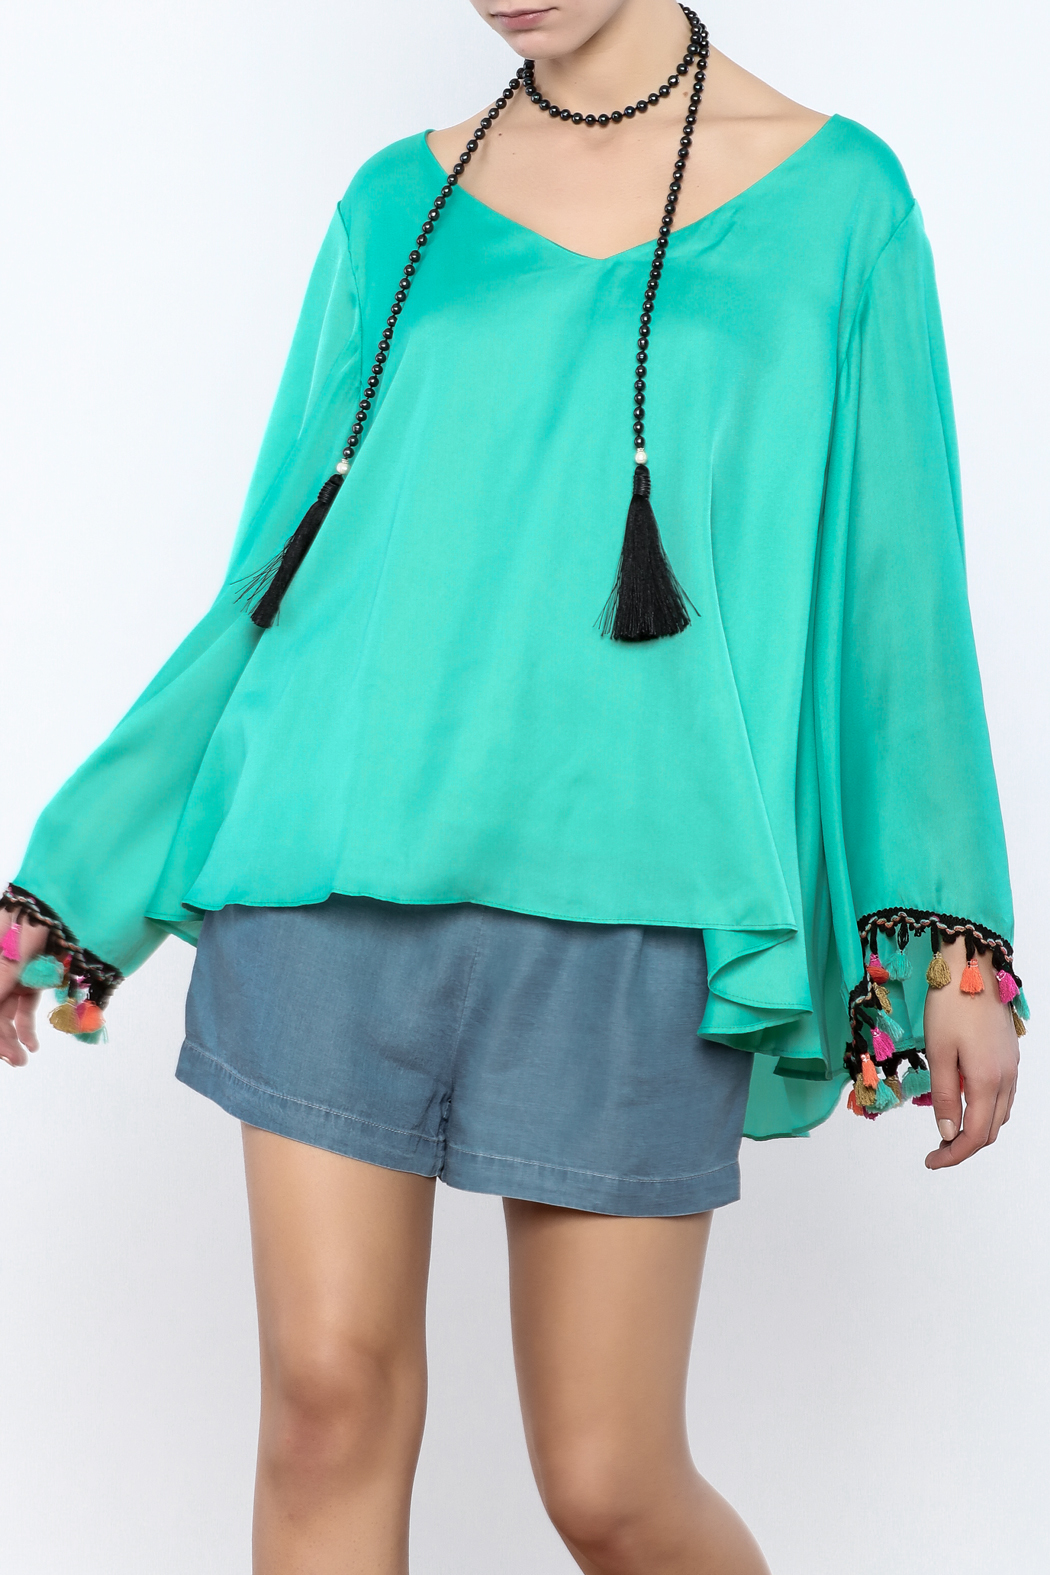 Judith March Festive Bell-Sleeved Top - Front Cropped Image